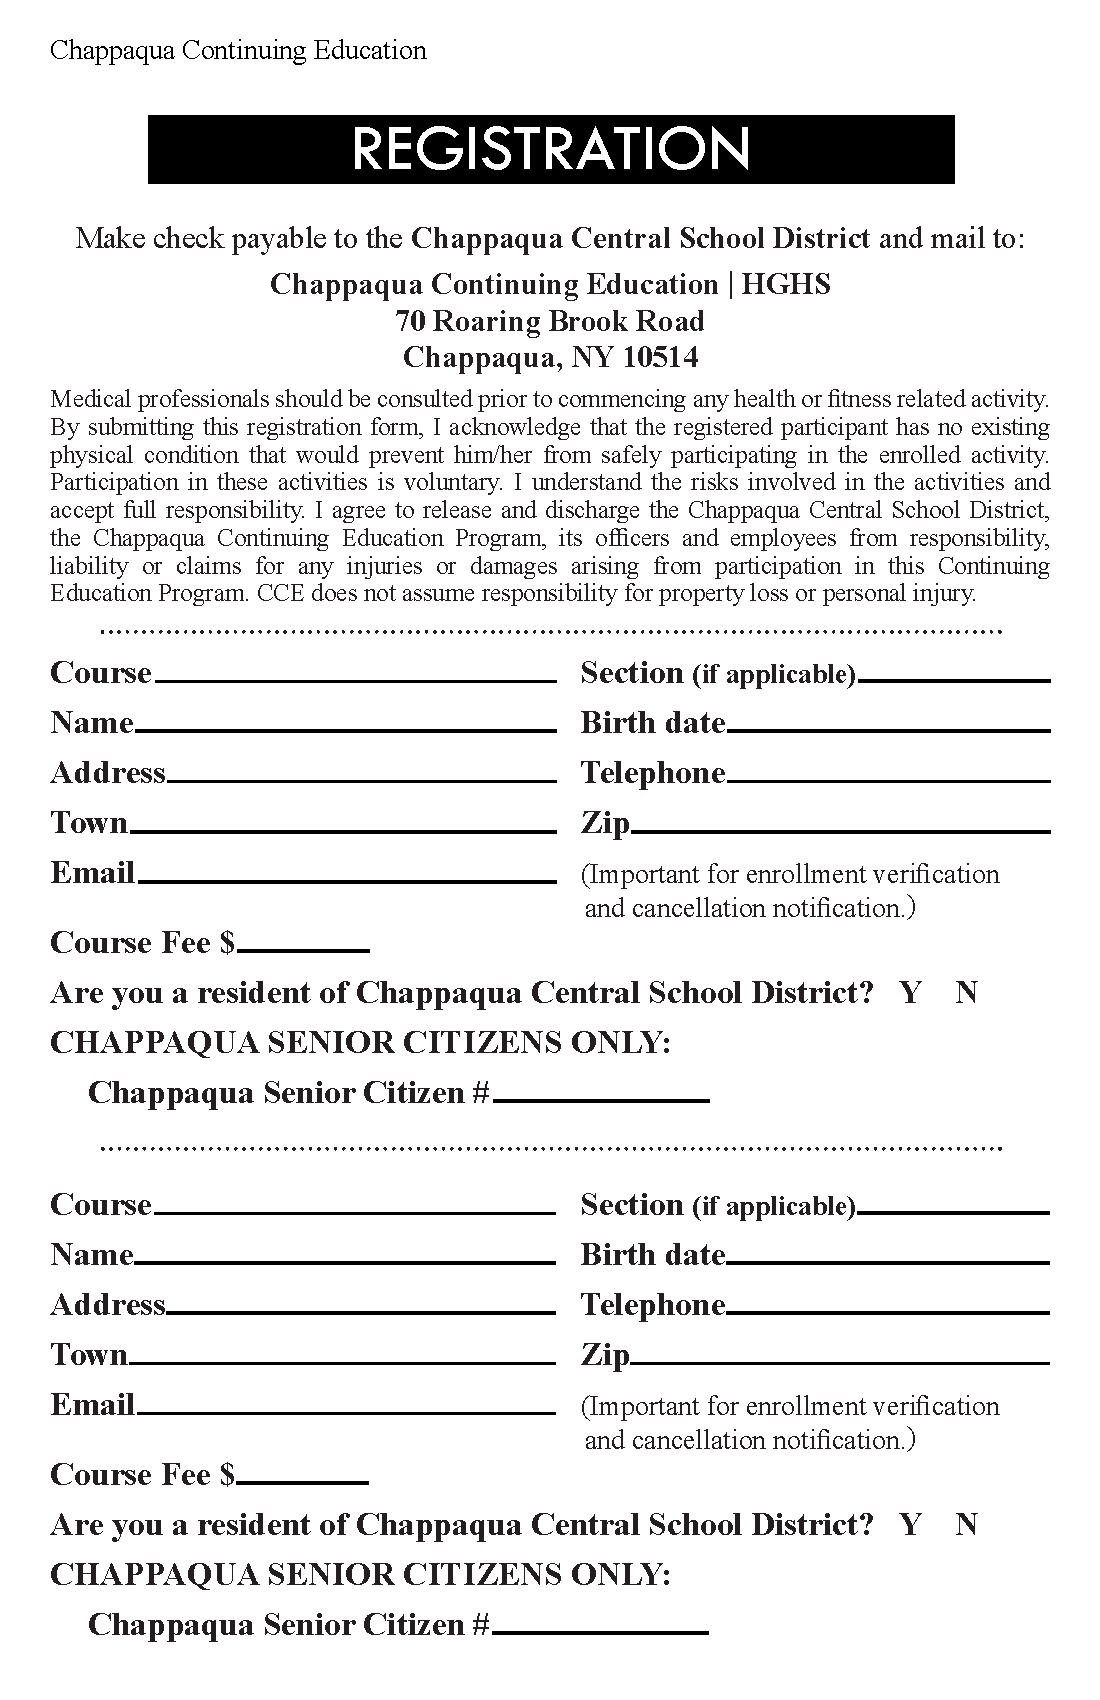 Printable registration form.